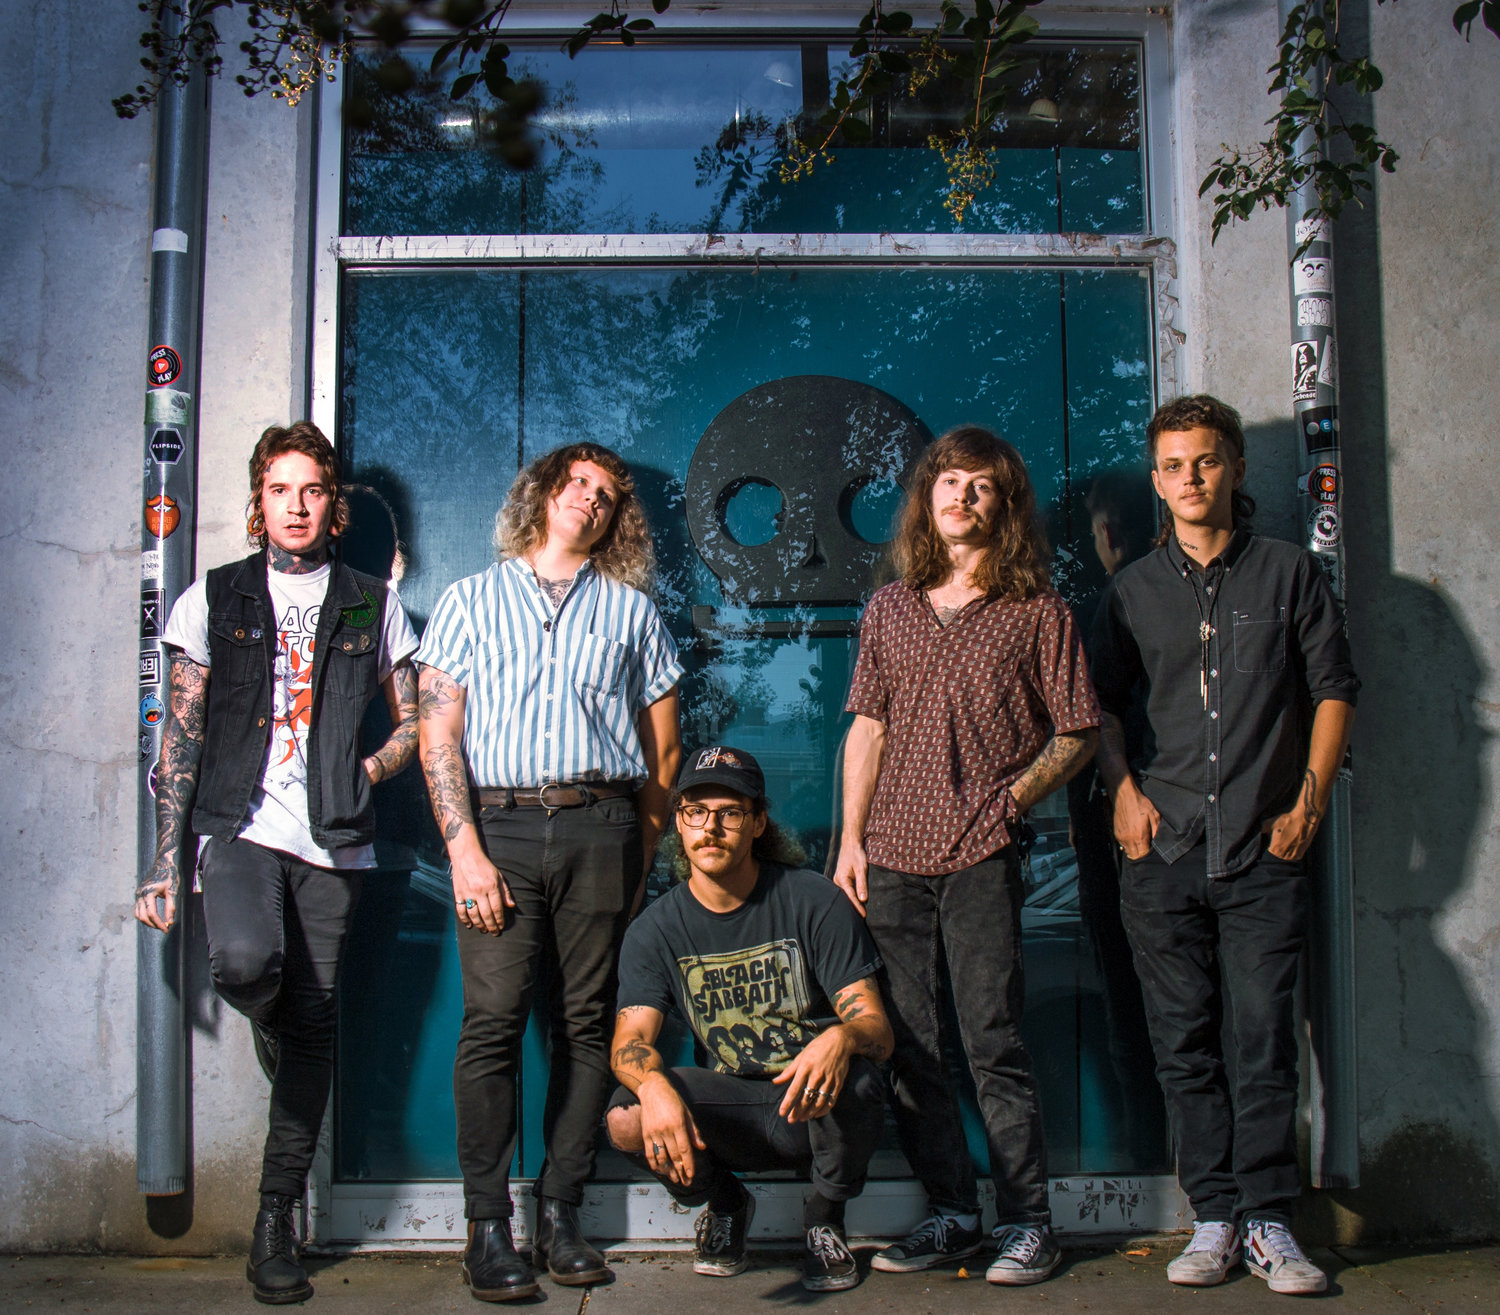 """PREMIERE: Rude Dude and the Creek Freaks release """"Lost My Head"""" music video"""